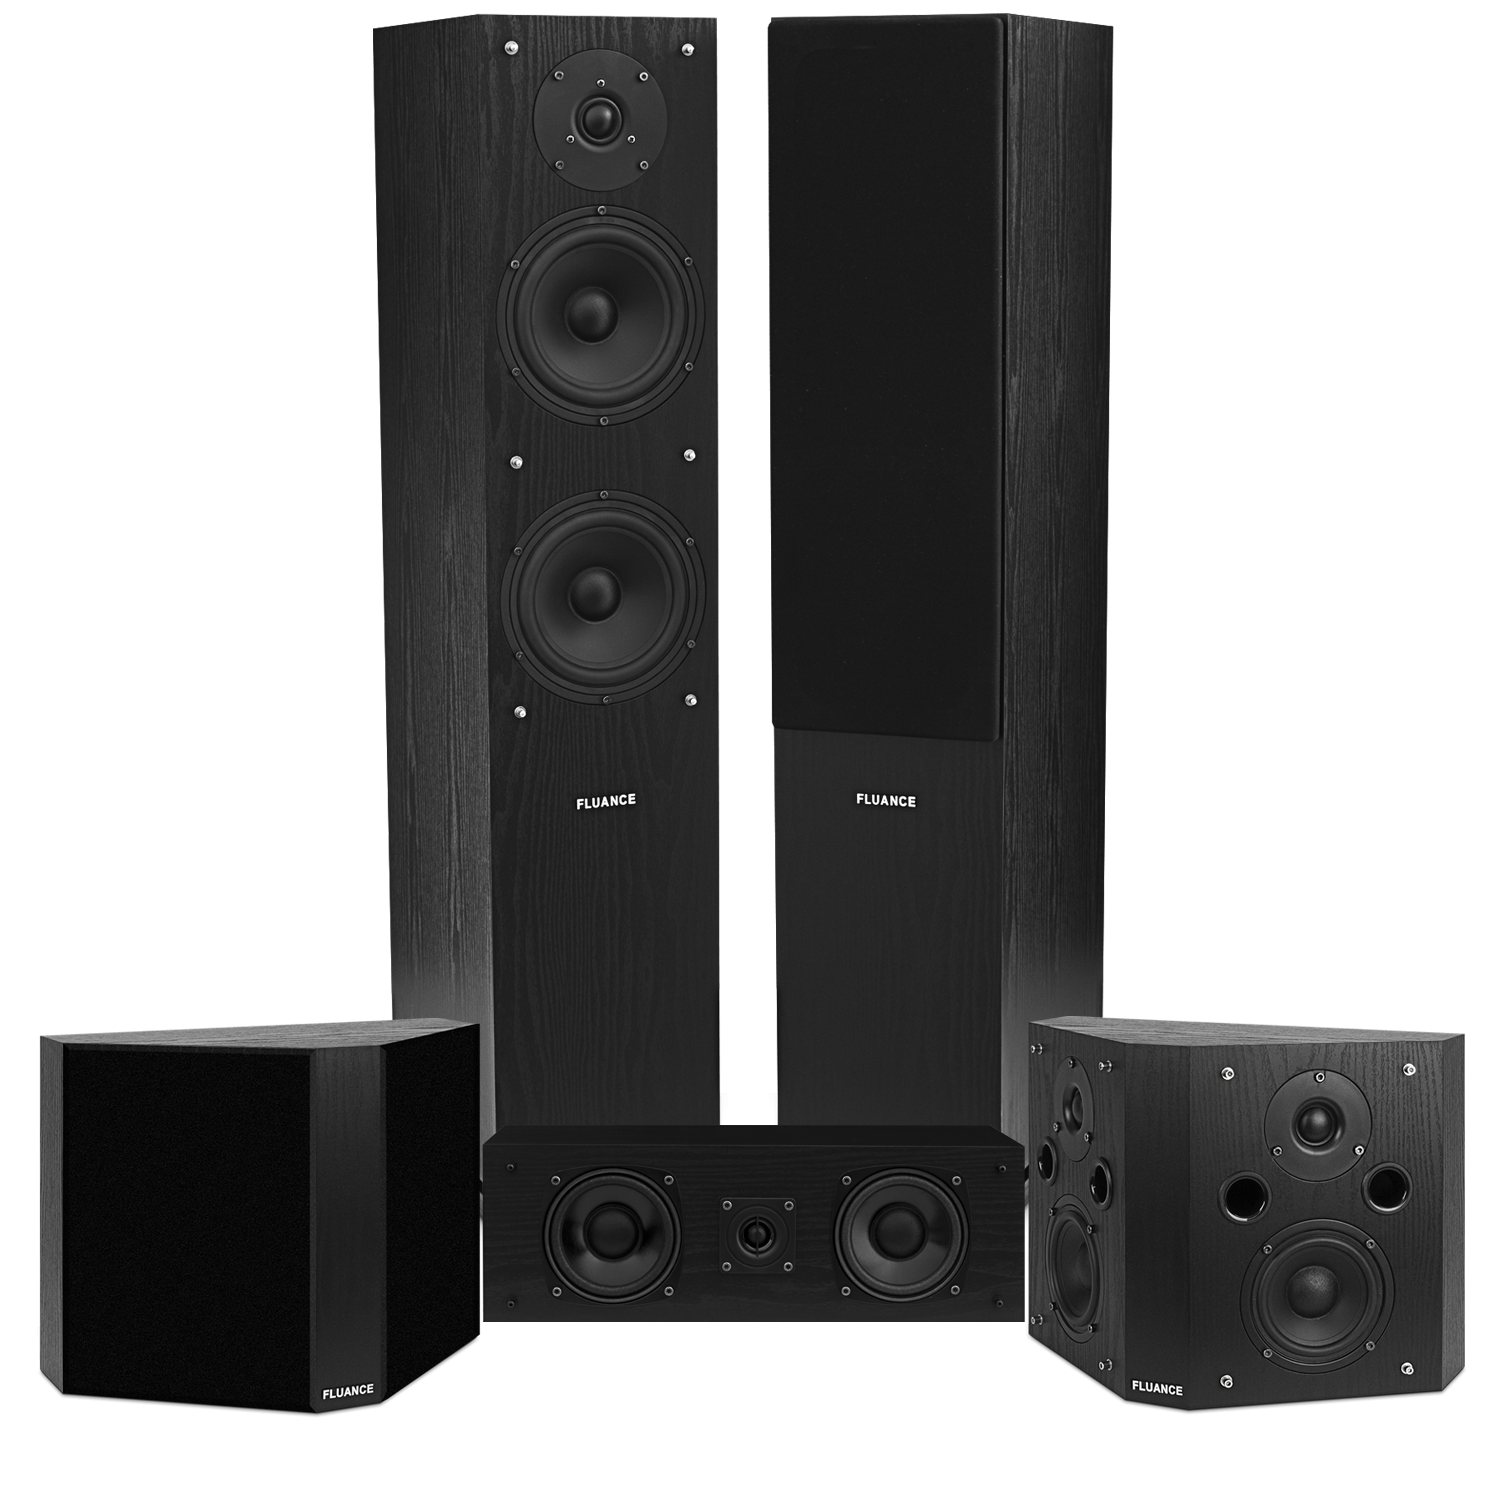 Fluance SXHTBBP-BK-KIT Classic Elite Home Theater System With Bipolar Speakers - Black